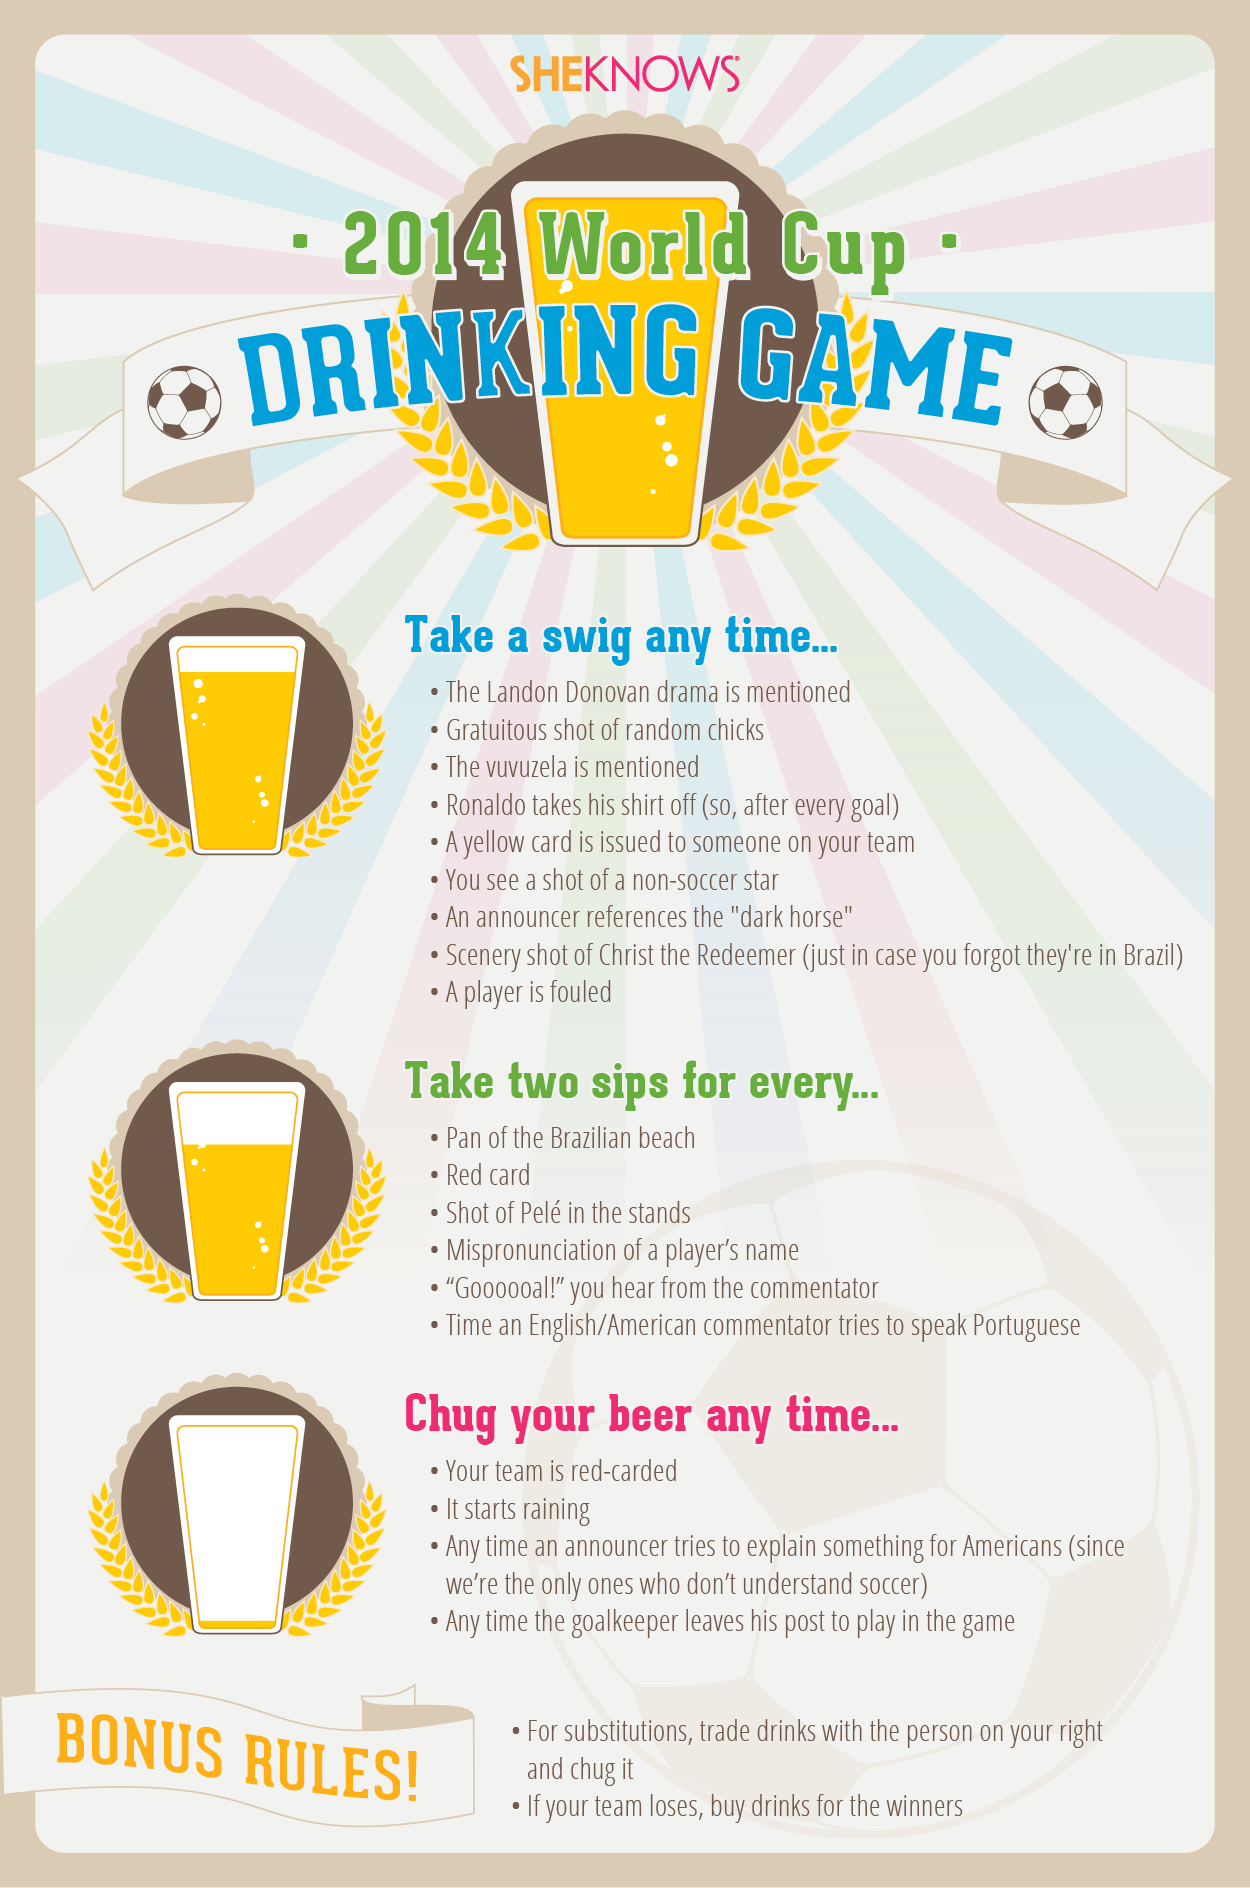 SheKnows' 2014 World Cup Drinking Game